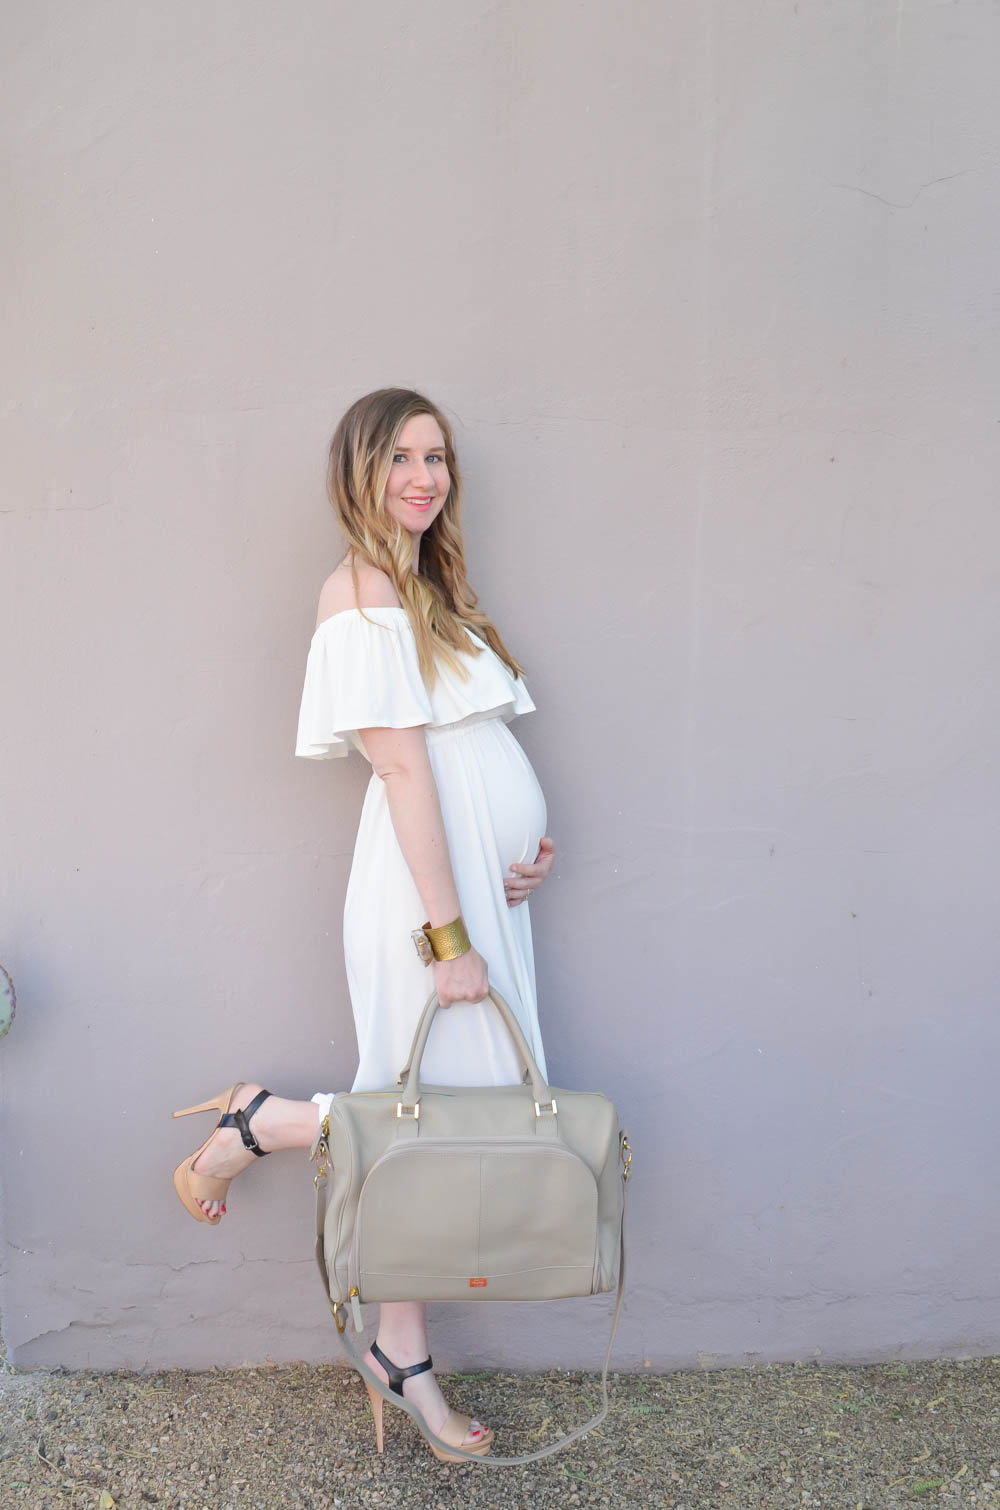 Maternity Dress | Nursing Dress | PacaPod diaper Bag | Maternity Fashion | Maternity Clothes